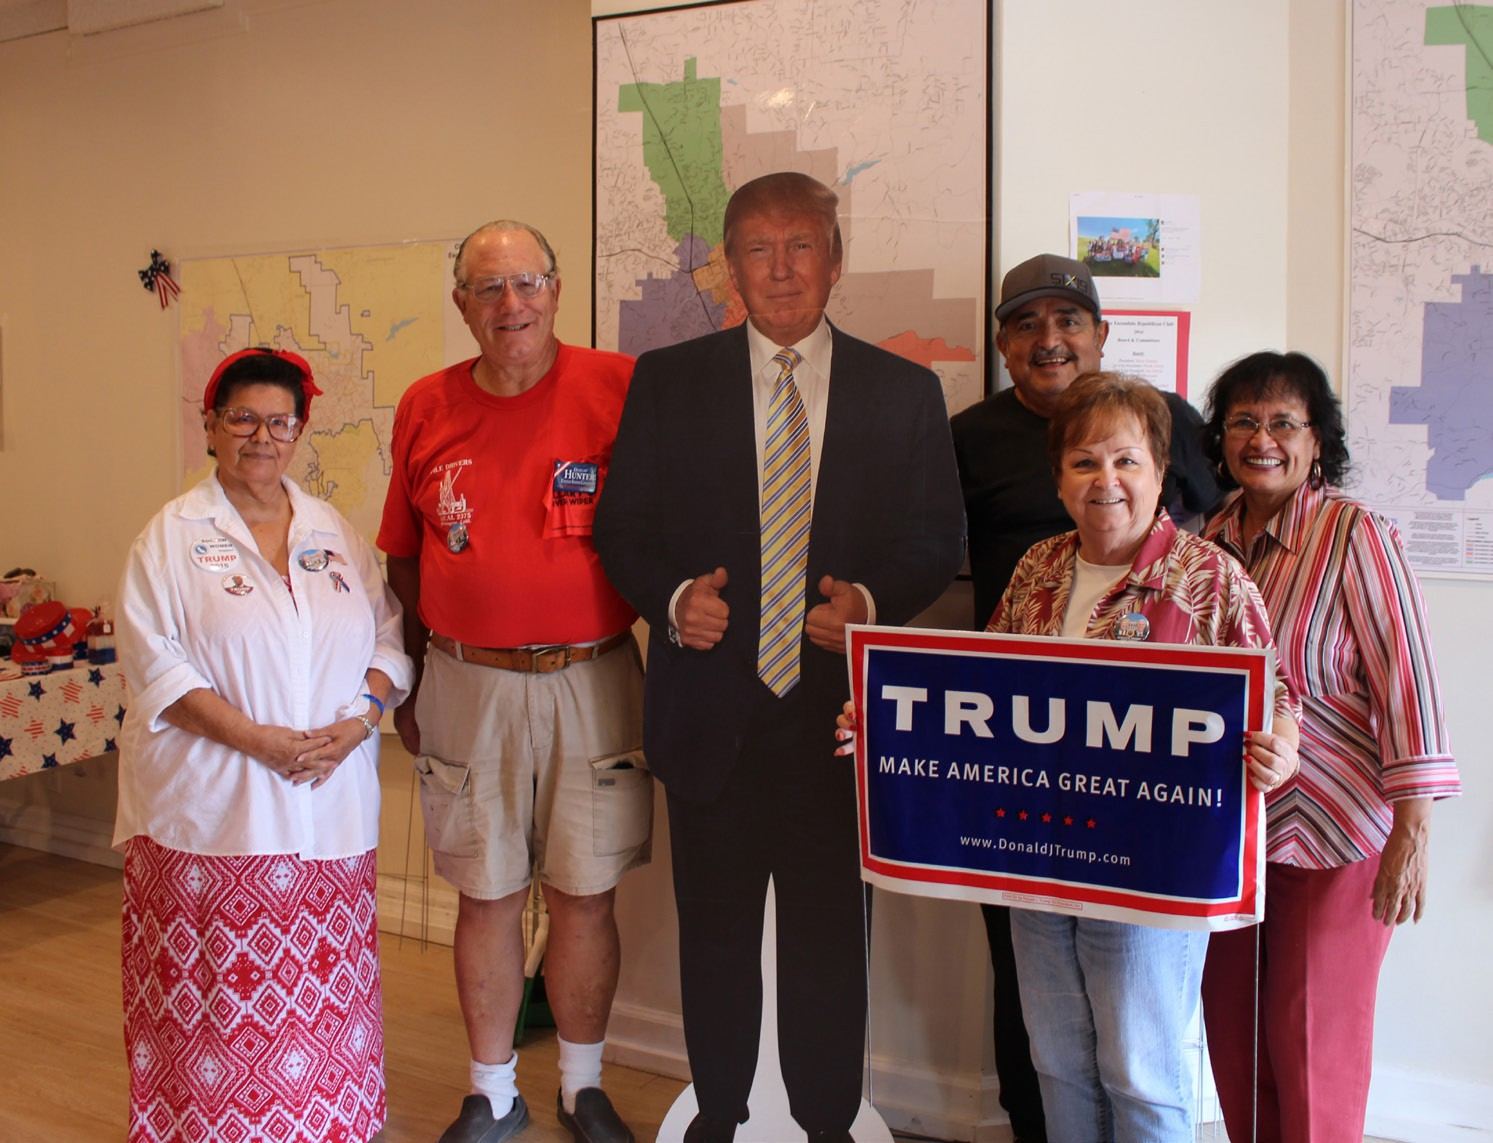 Volunteers at the GOP Escondido headquarters pose with the party's nominee, who, miraculously managed to drop by for a visit just as we showed up for a photo. The candidate ended up being less multidimensional than we had been led to believe.